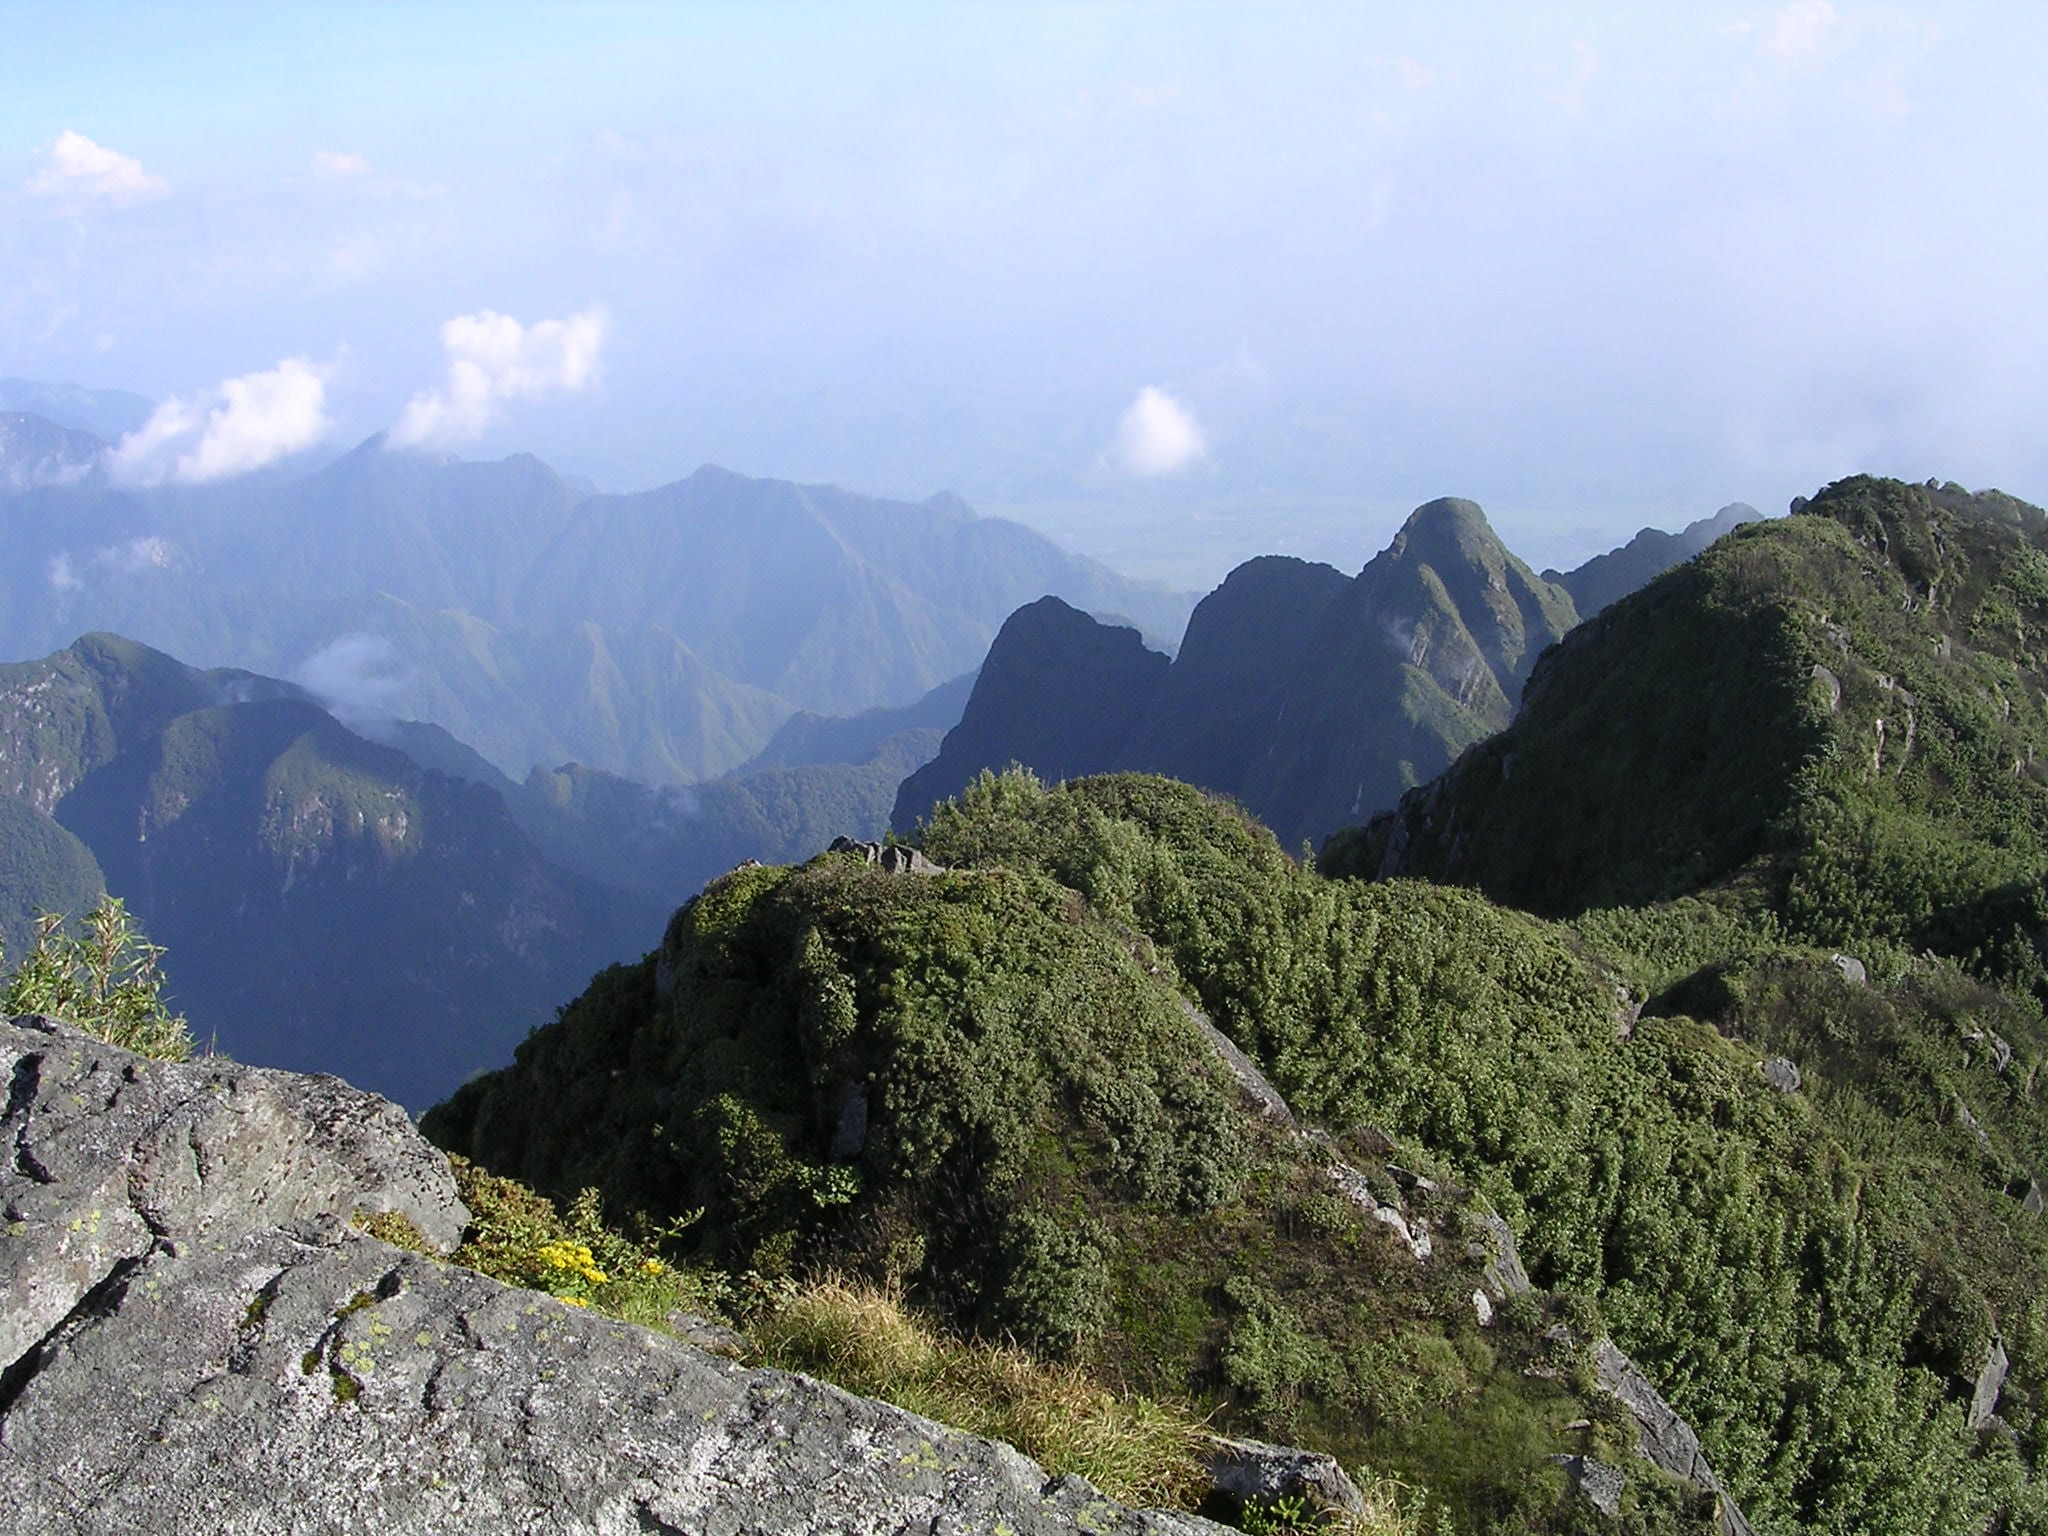 Image of the Fansipan Mountain in the Hoang Lien National Park in Vientam